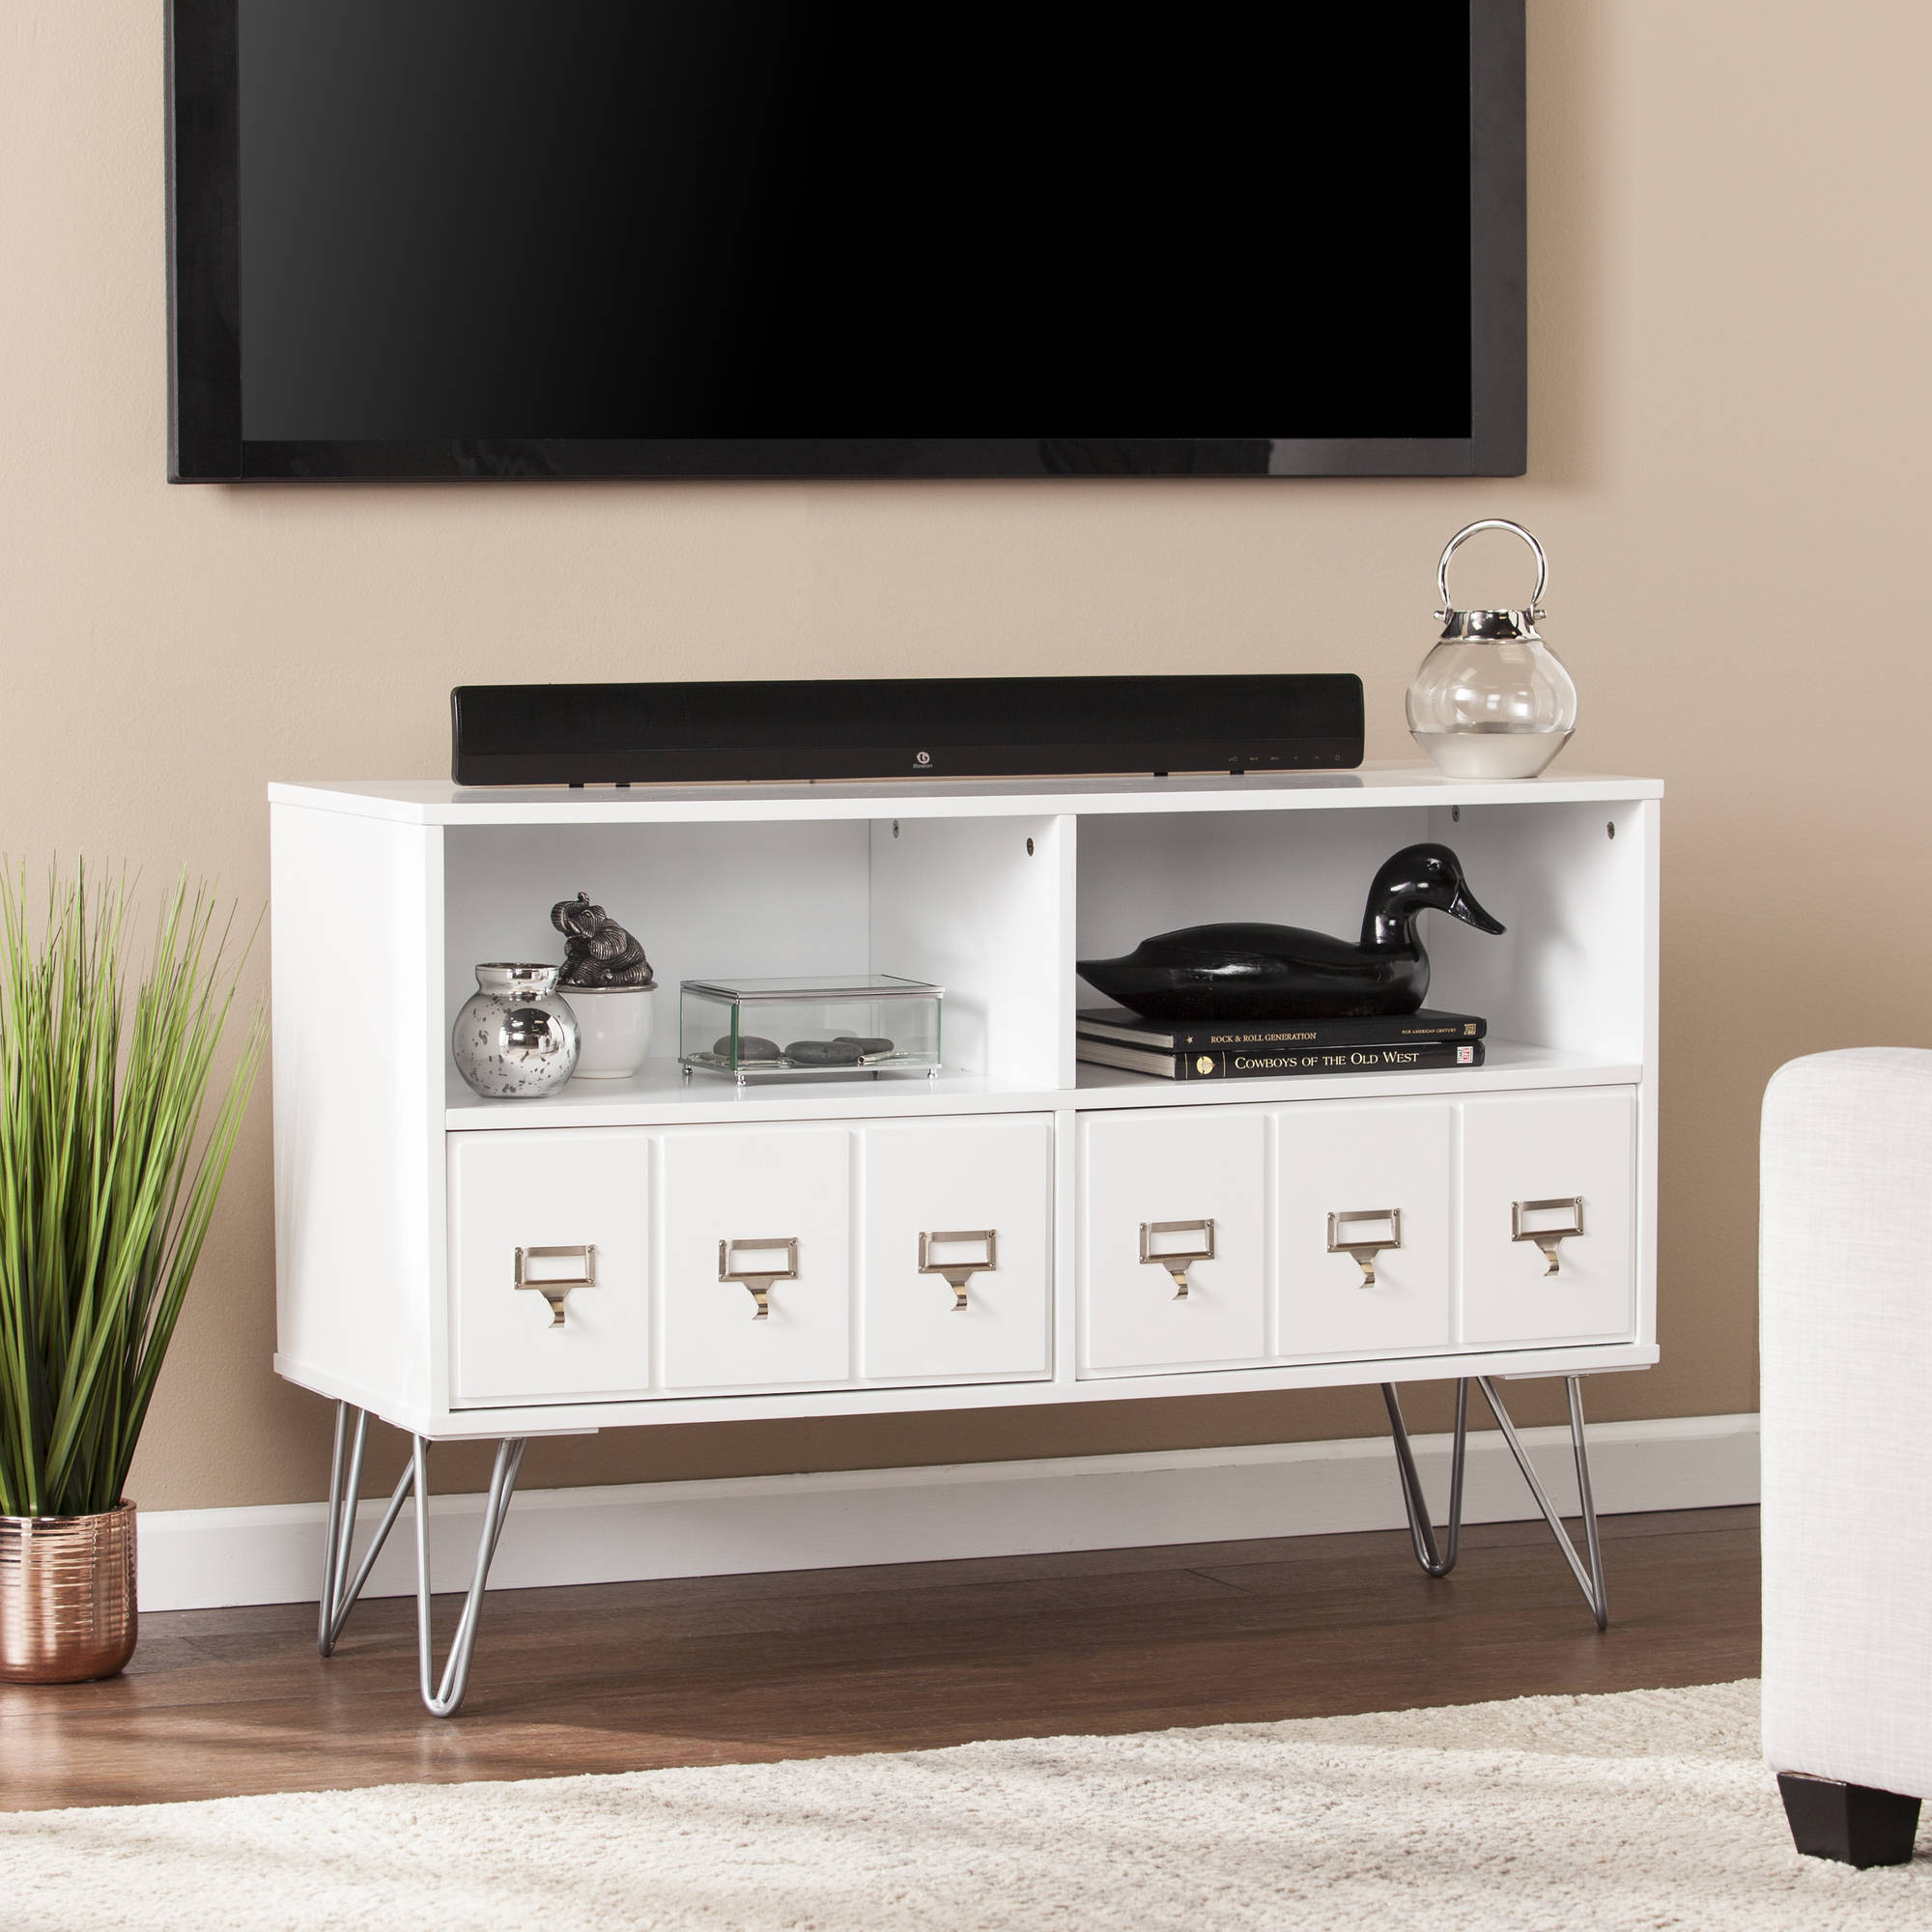 Southern Enterprises Blandenship MidCentury TV Stand for TVs up to 40""